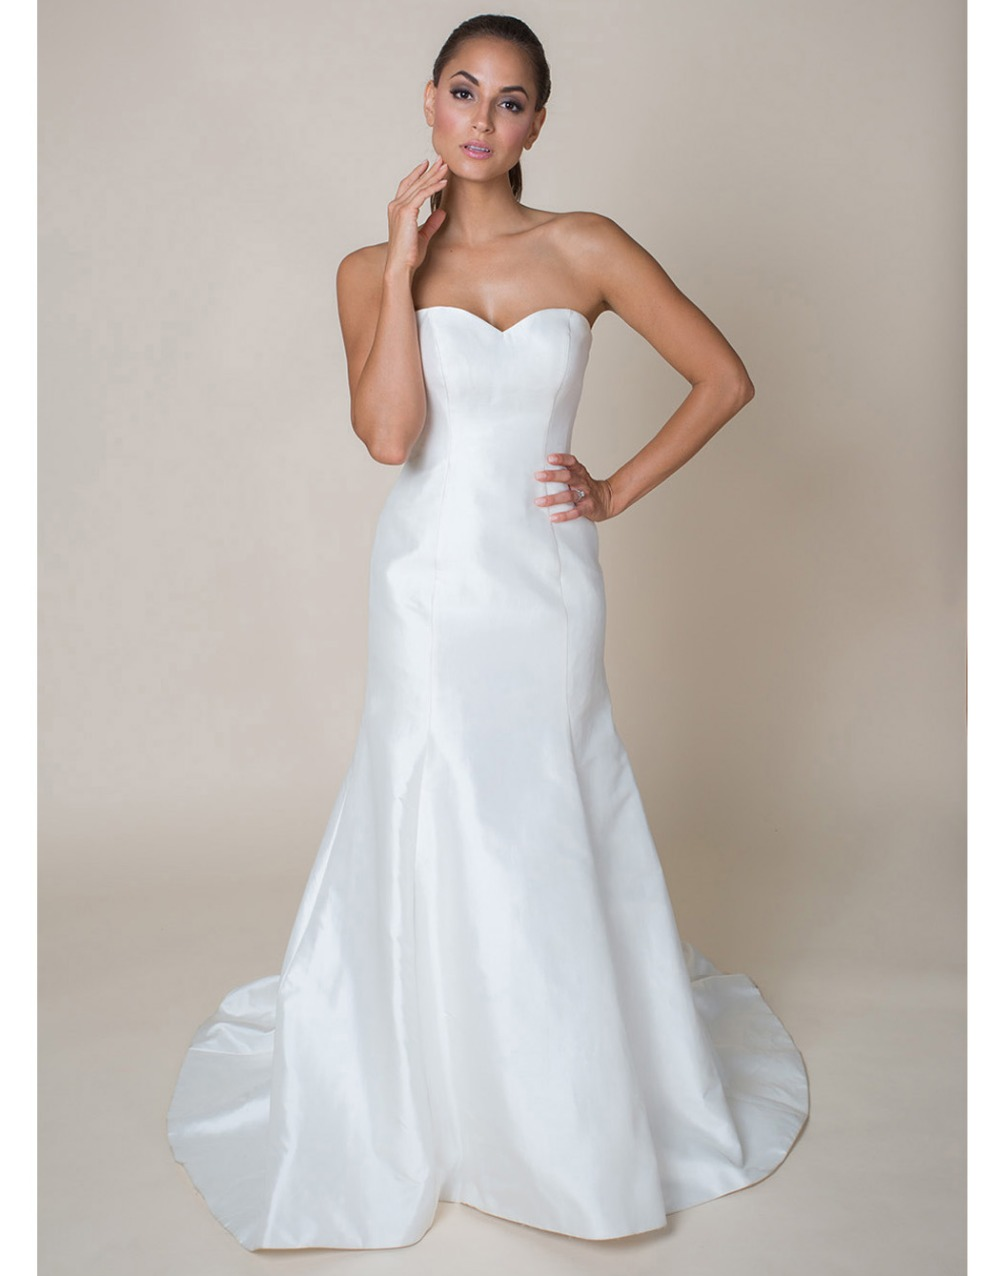 Convertible wedding dress cranky fanatic lost podcast convertible wedding dress junglespirit Image collections